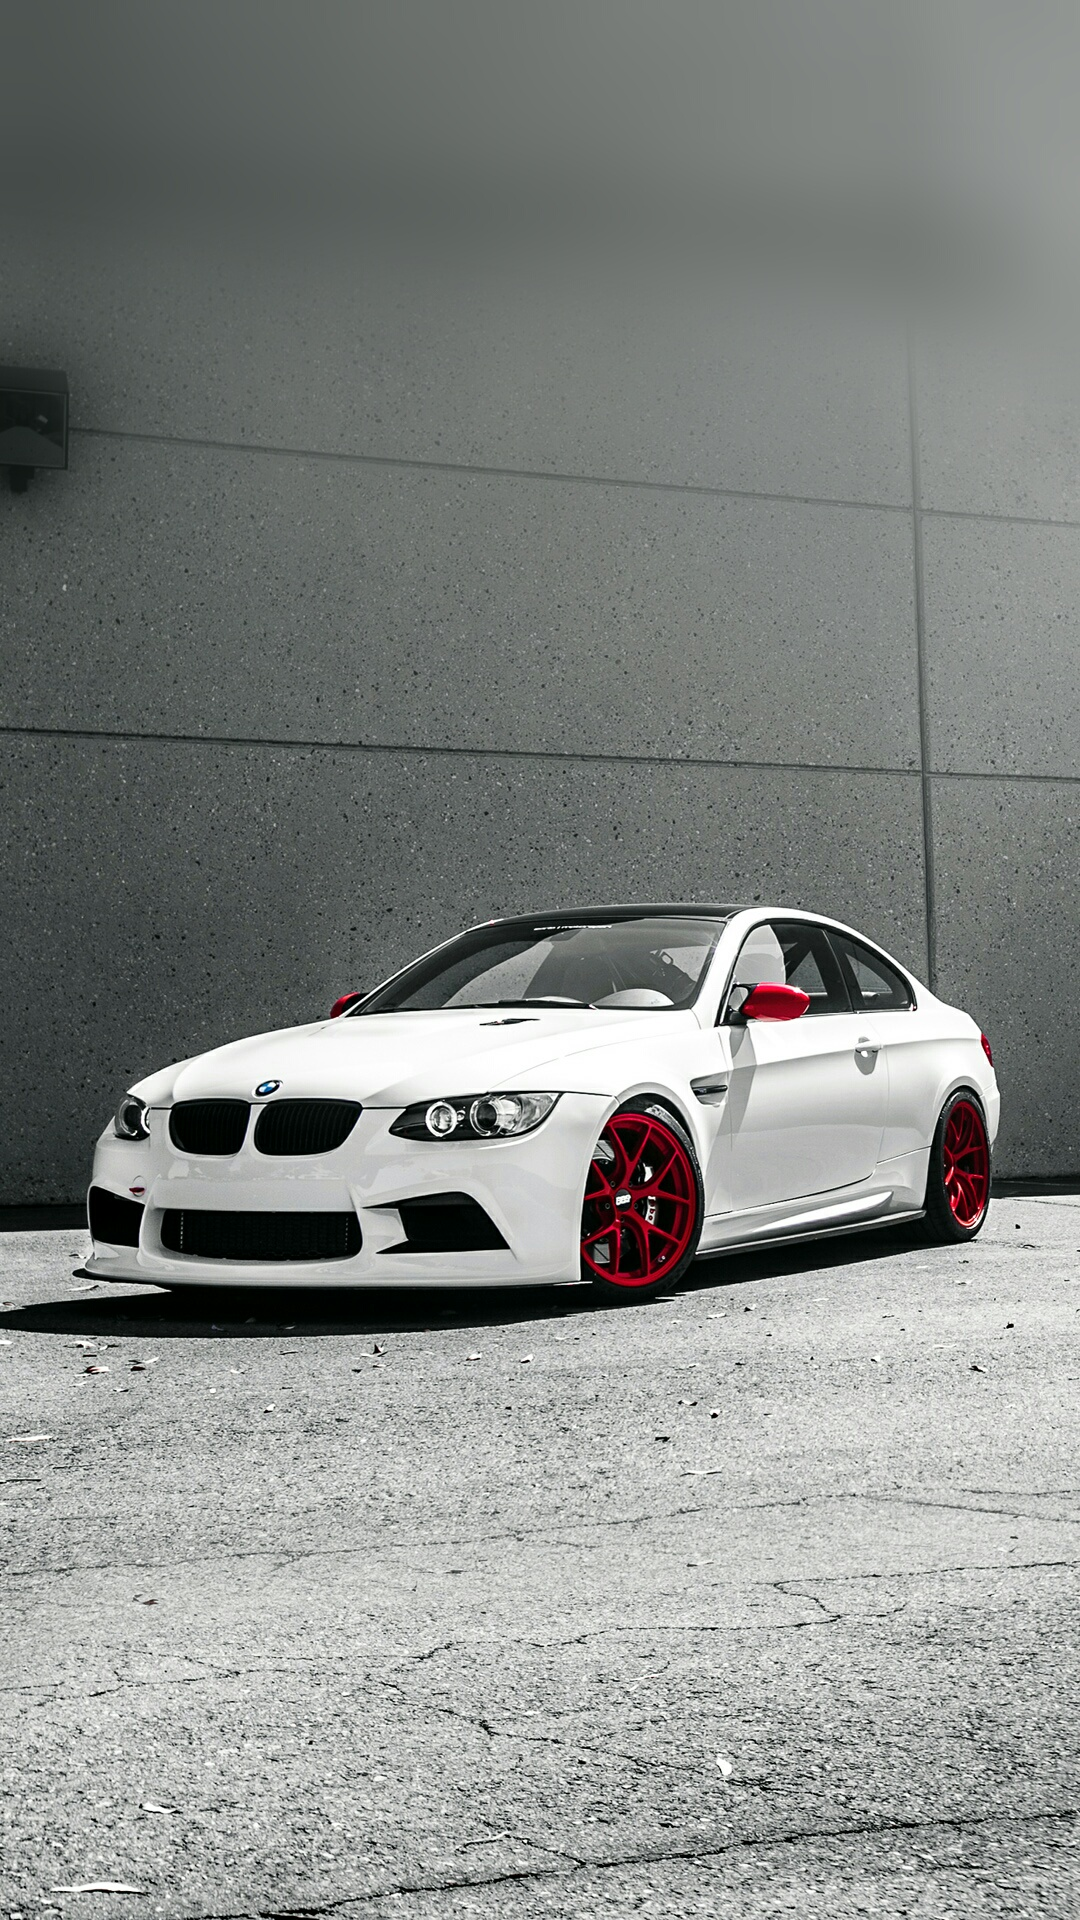 iPhone wallpaper bmw m3 BMW